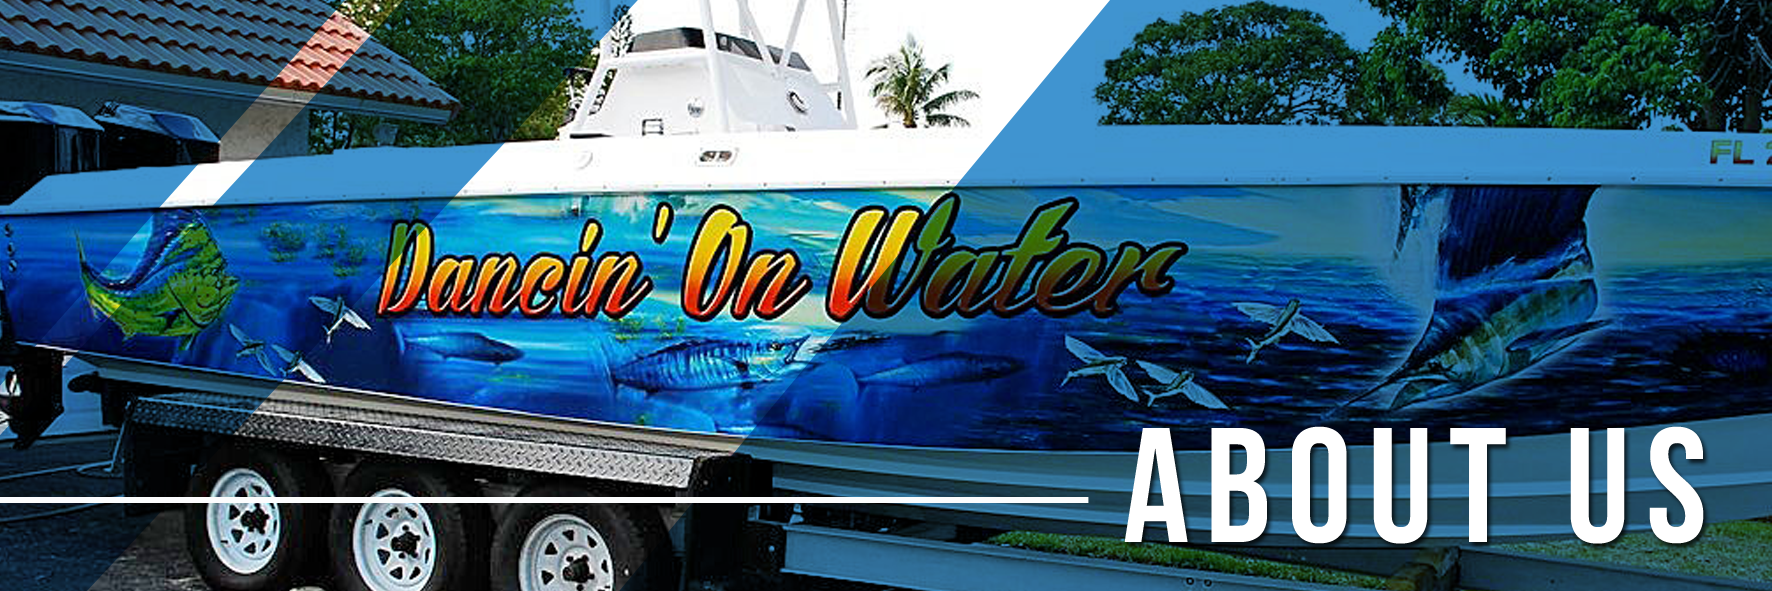 a boat in advertising wrap